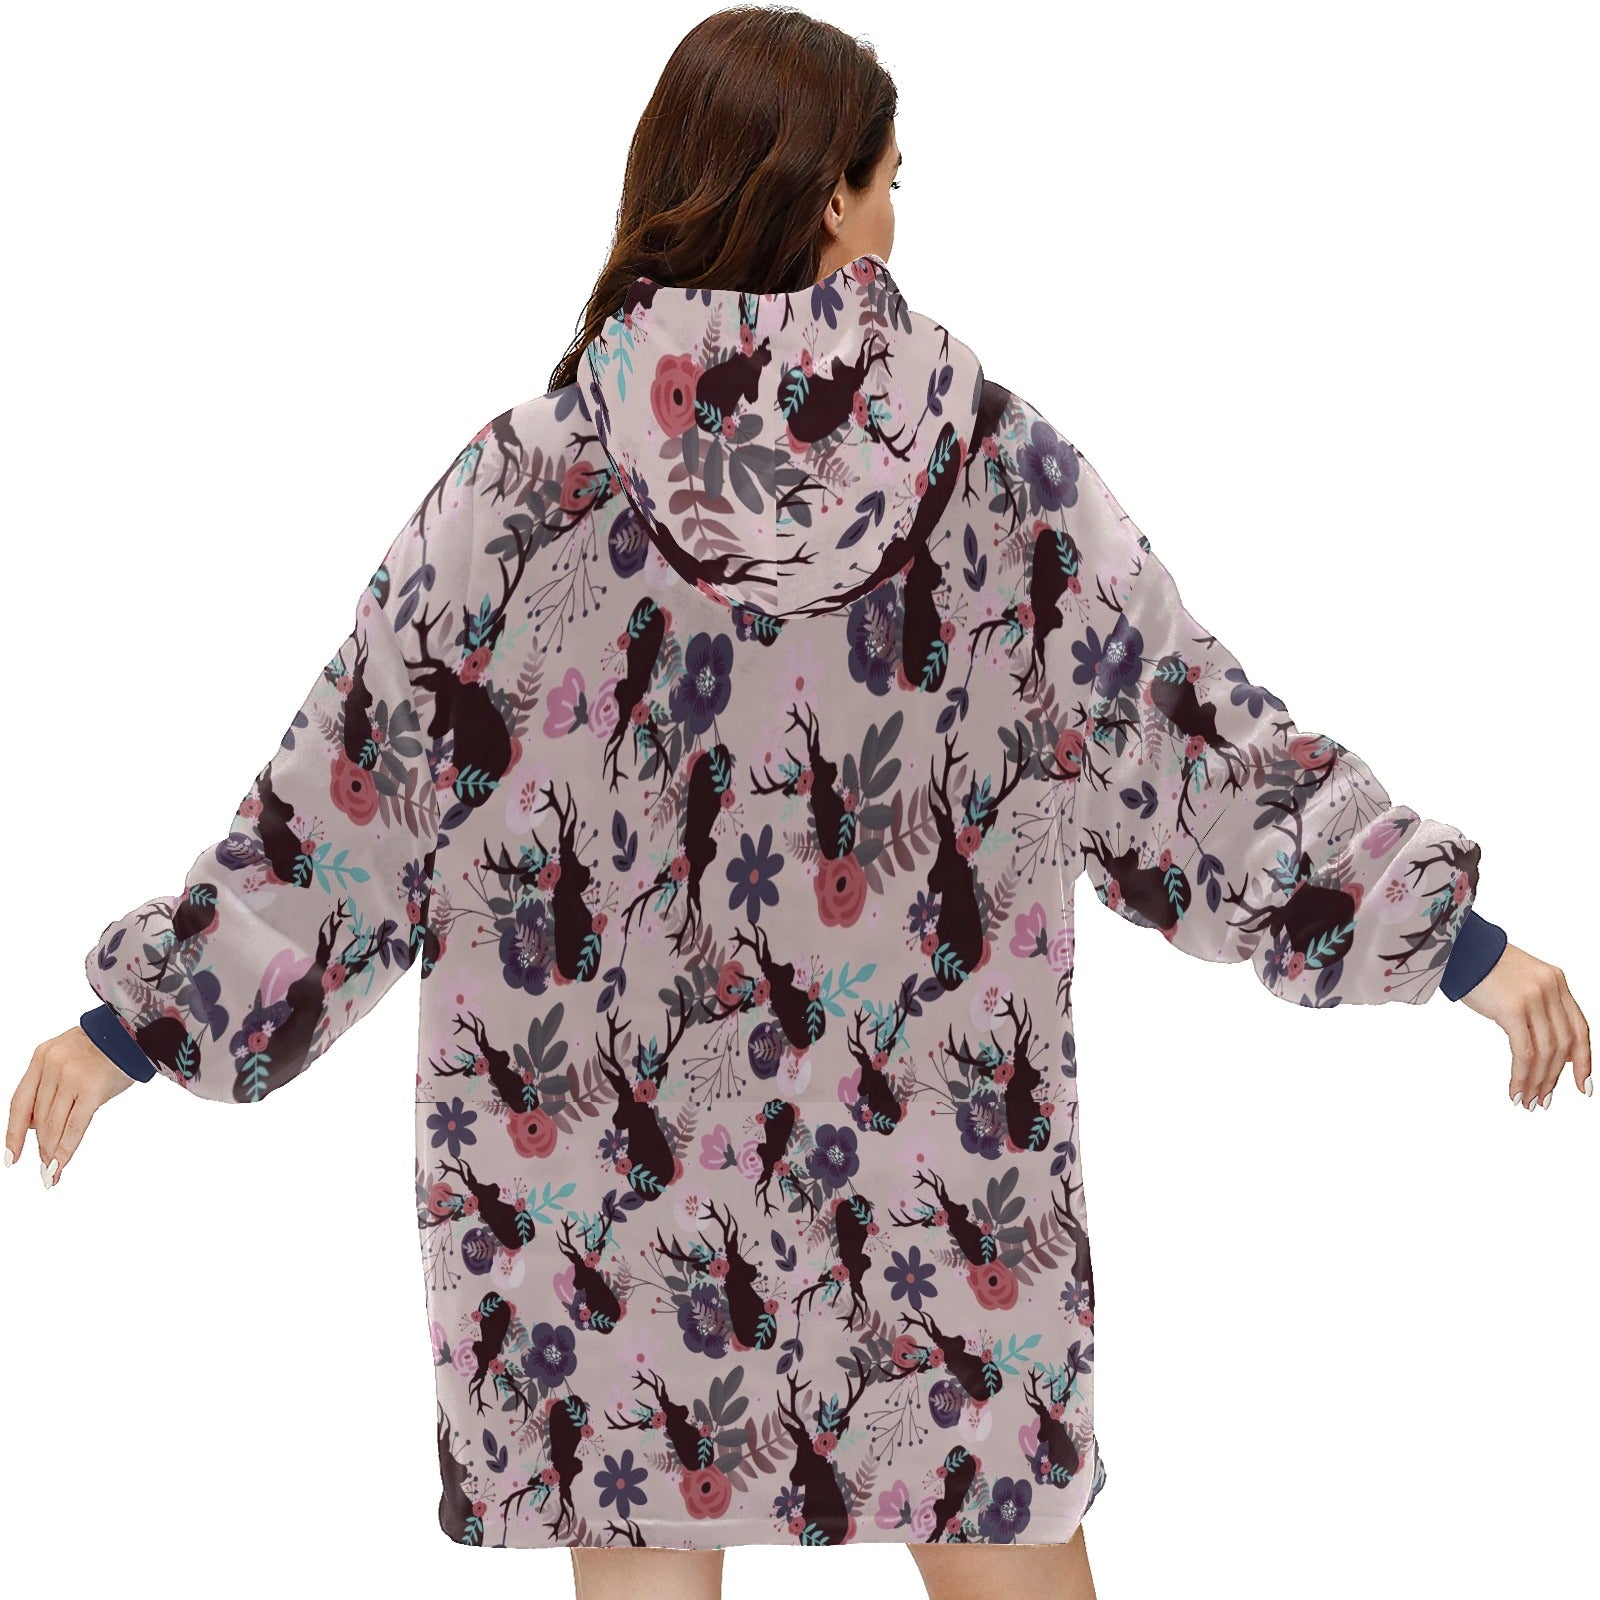 Rustic Deer Head Mauve Floral Girl Baby Shower Hoodie Blanket Sweatshirt